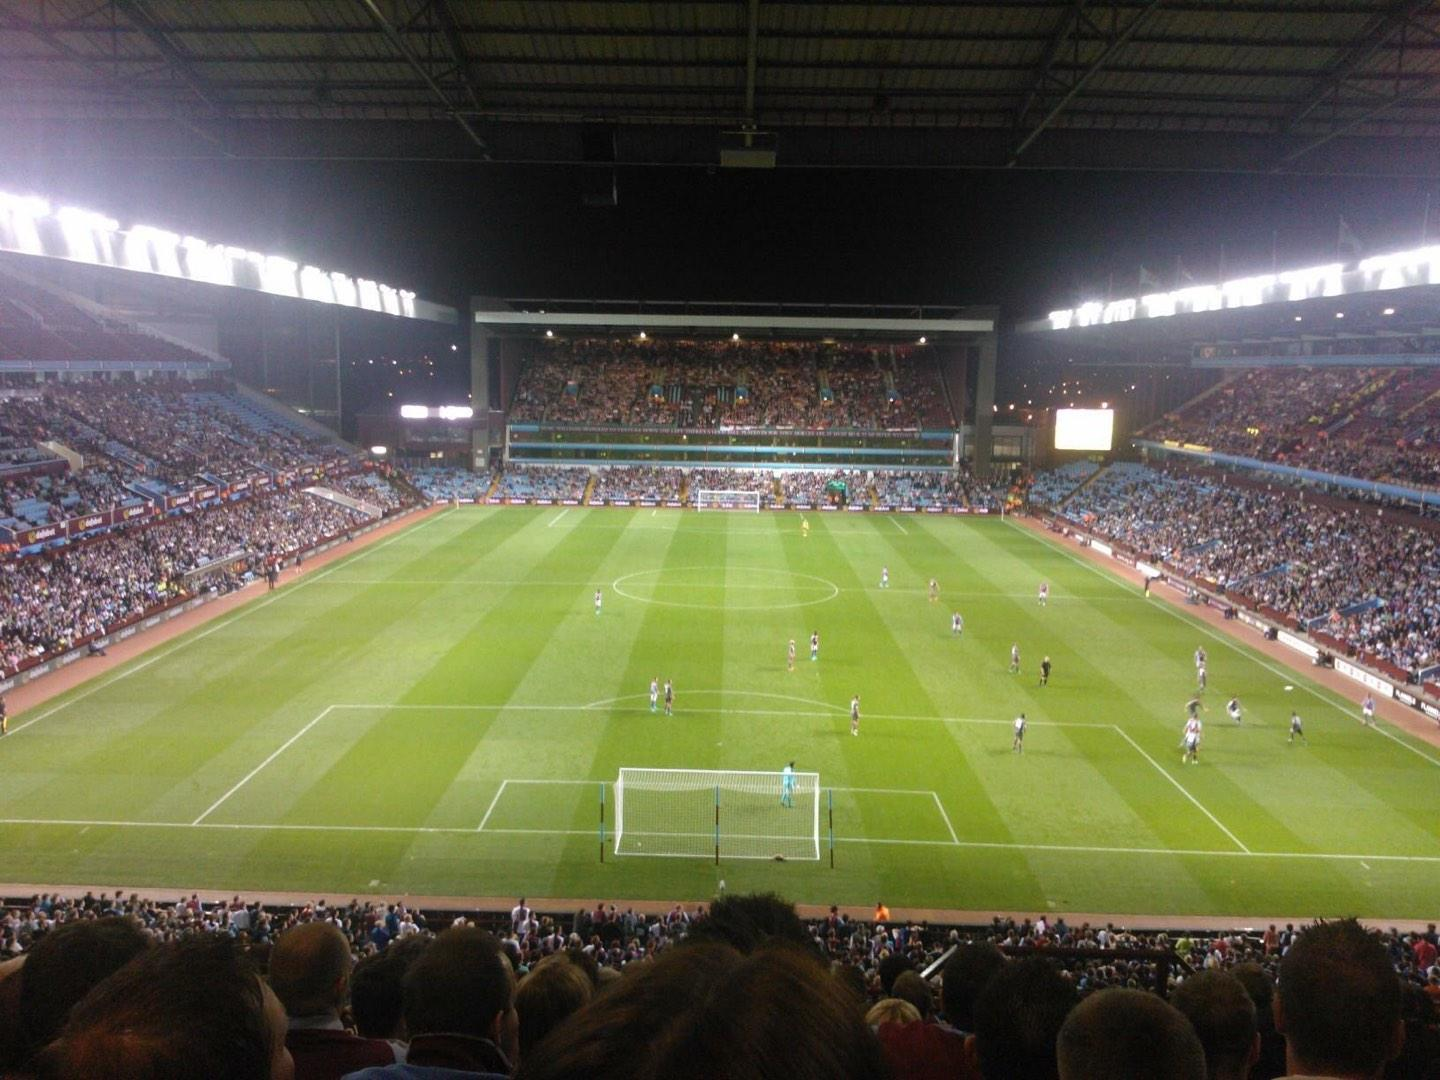 Villa Park Section K5 Row 10 Seat 124